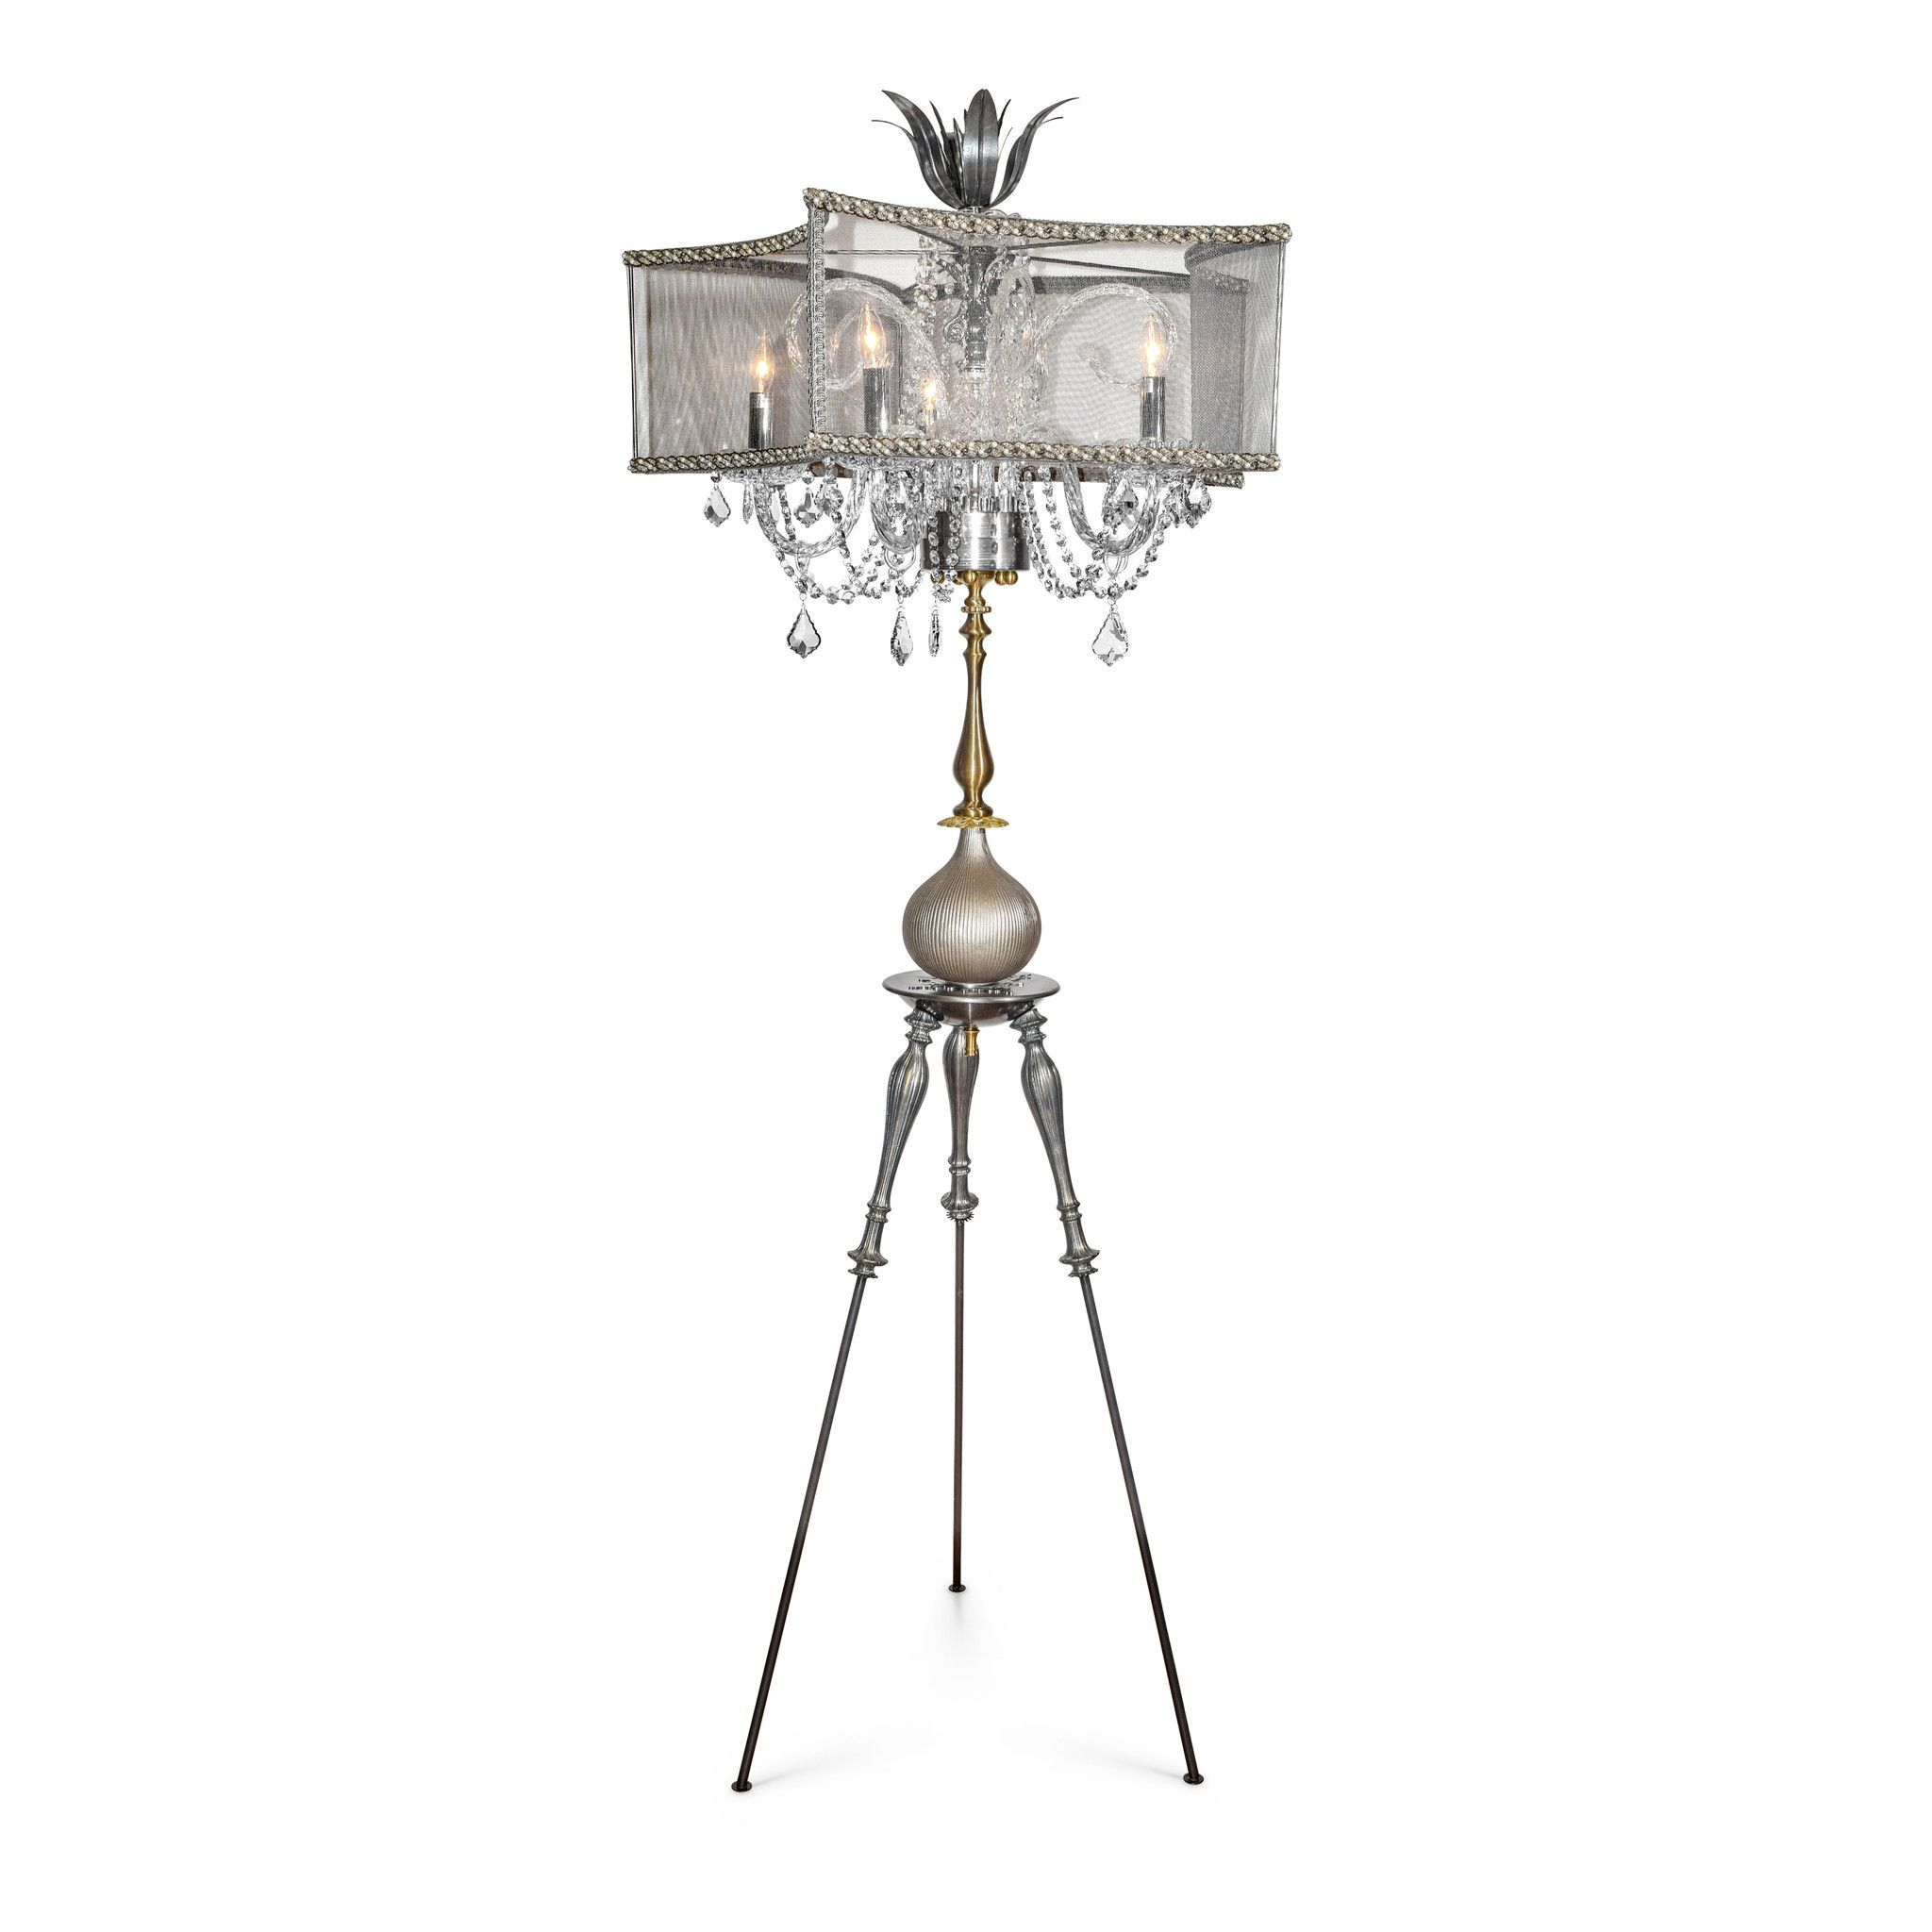 Ilia Standing Chandelier Floor Lamp